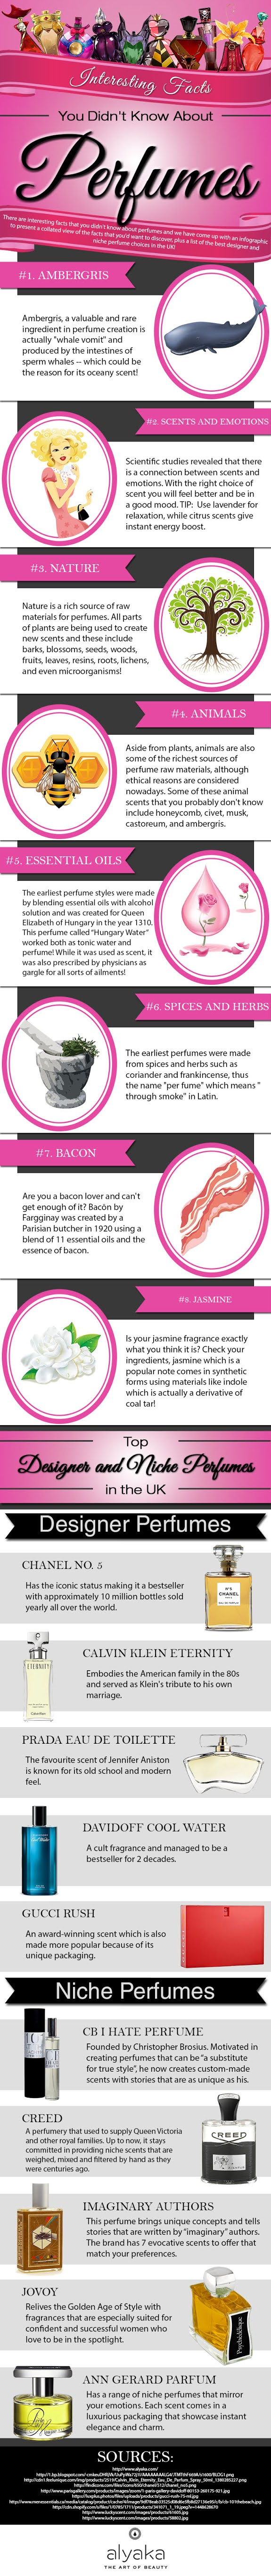 Interesting Facts You Didn't Know About Perfumes #infographic #Perfumes #Perfume #Interesting Facts